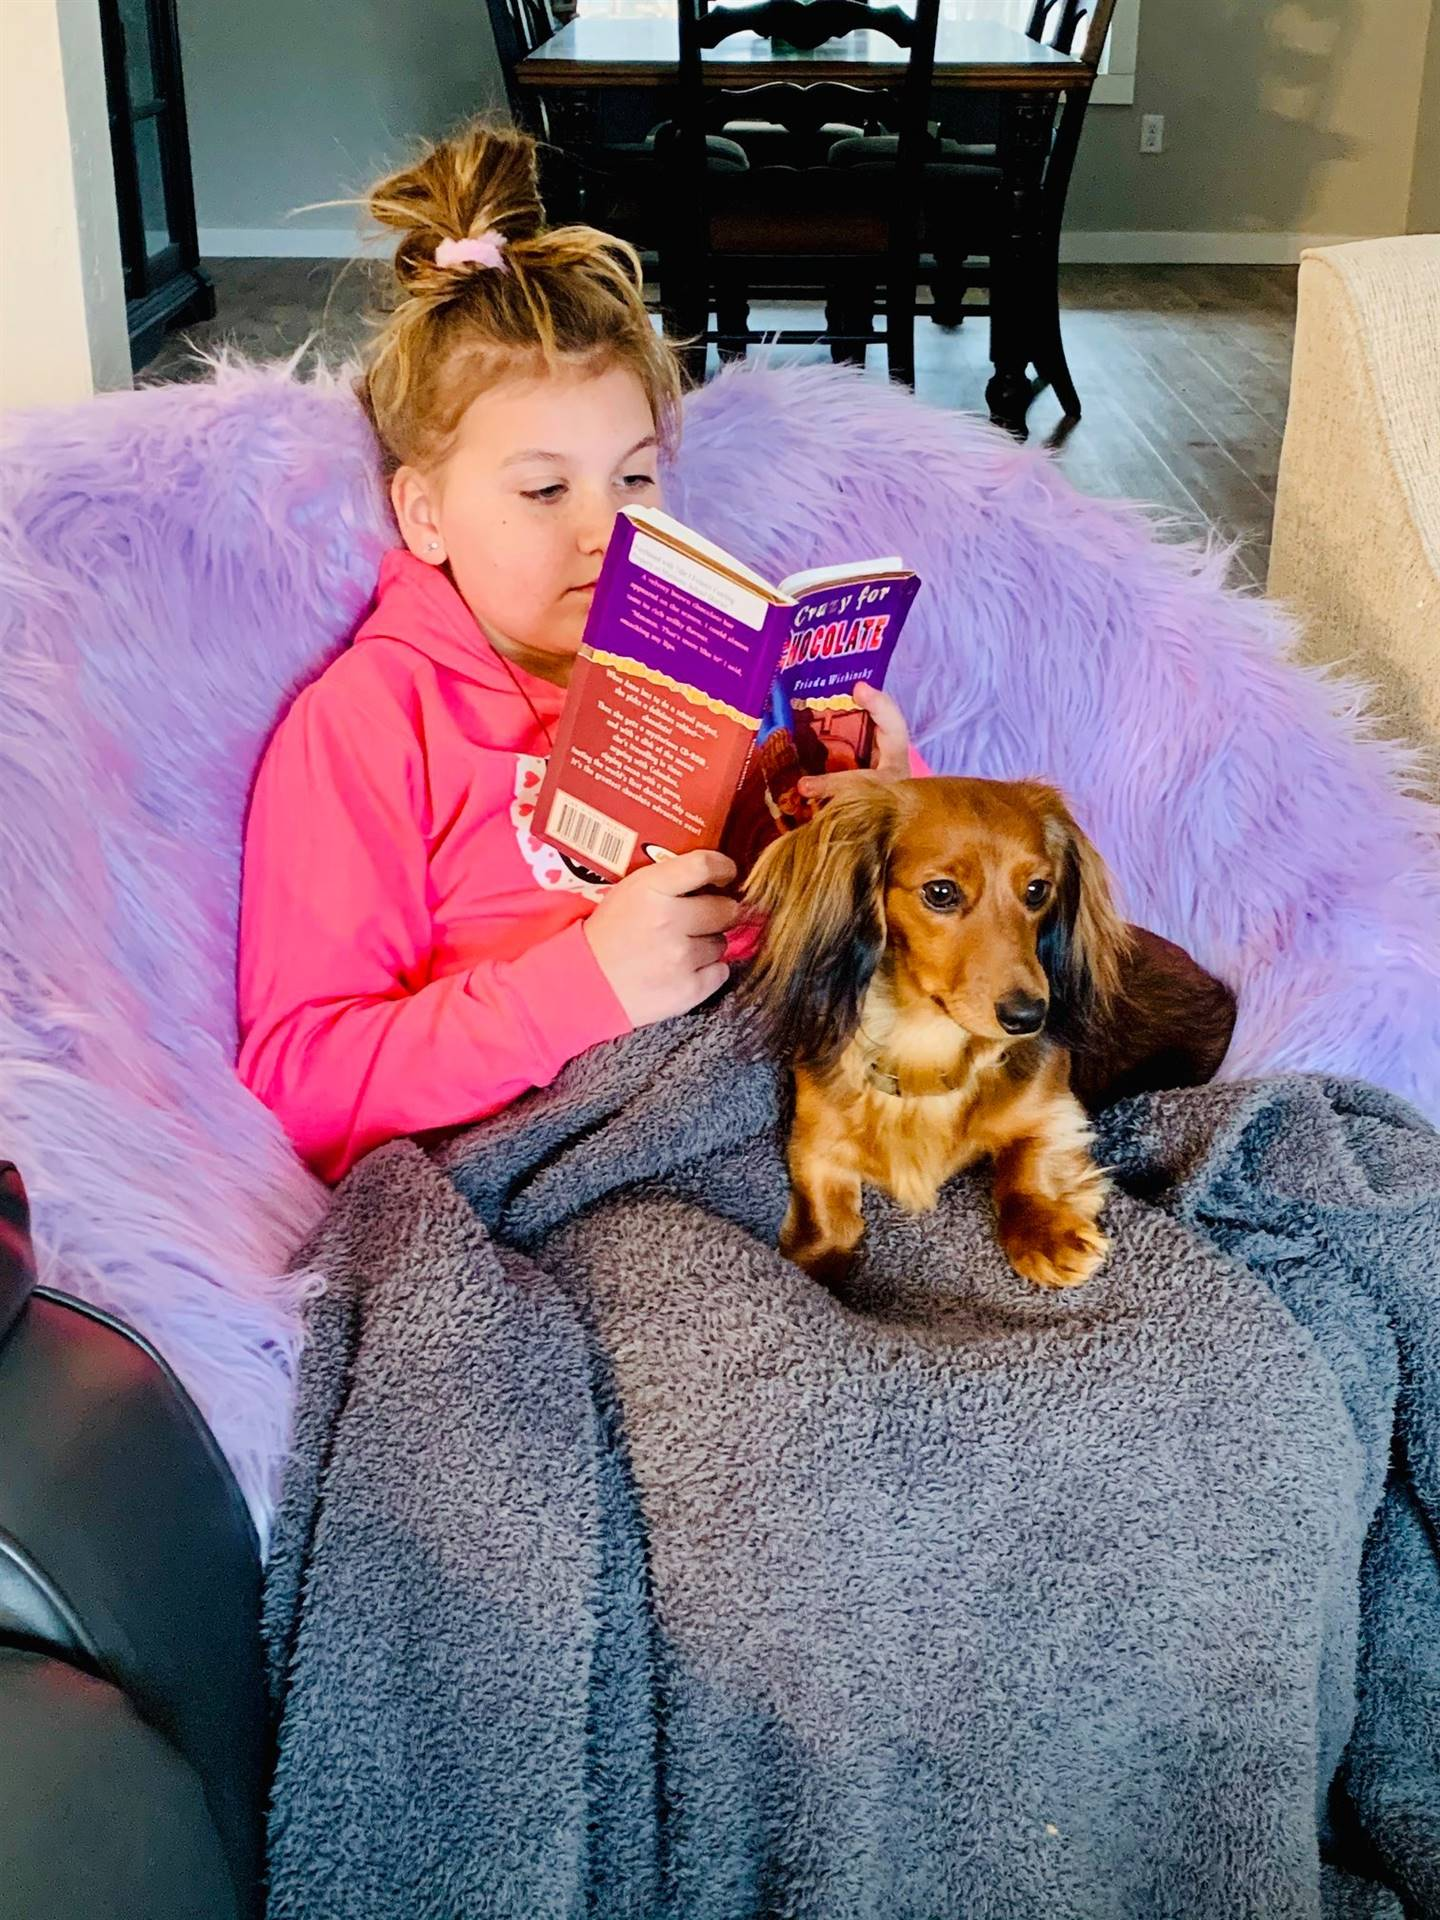 Student reading a book with a dog